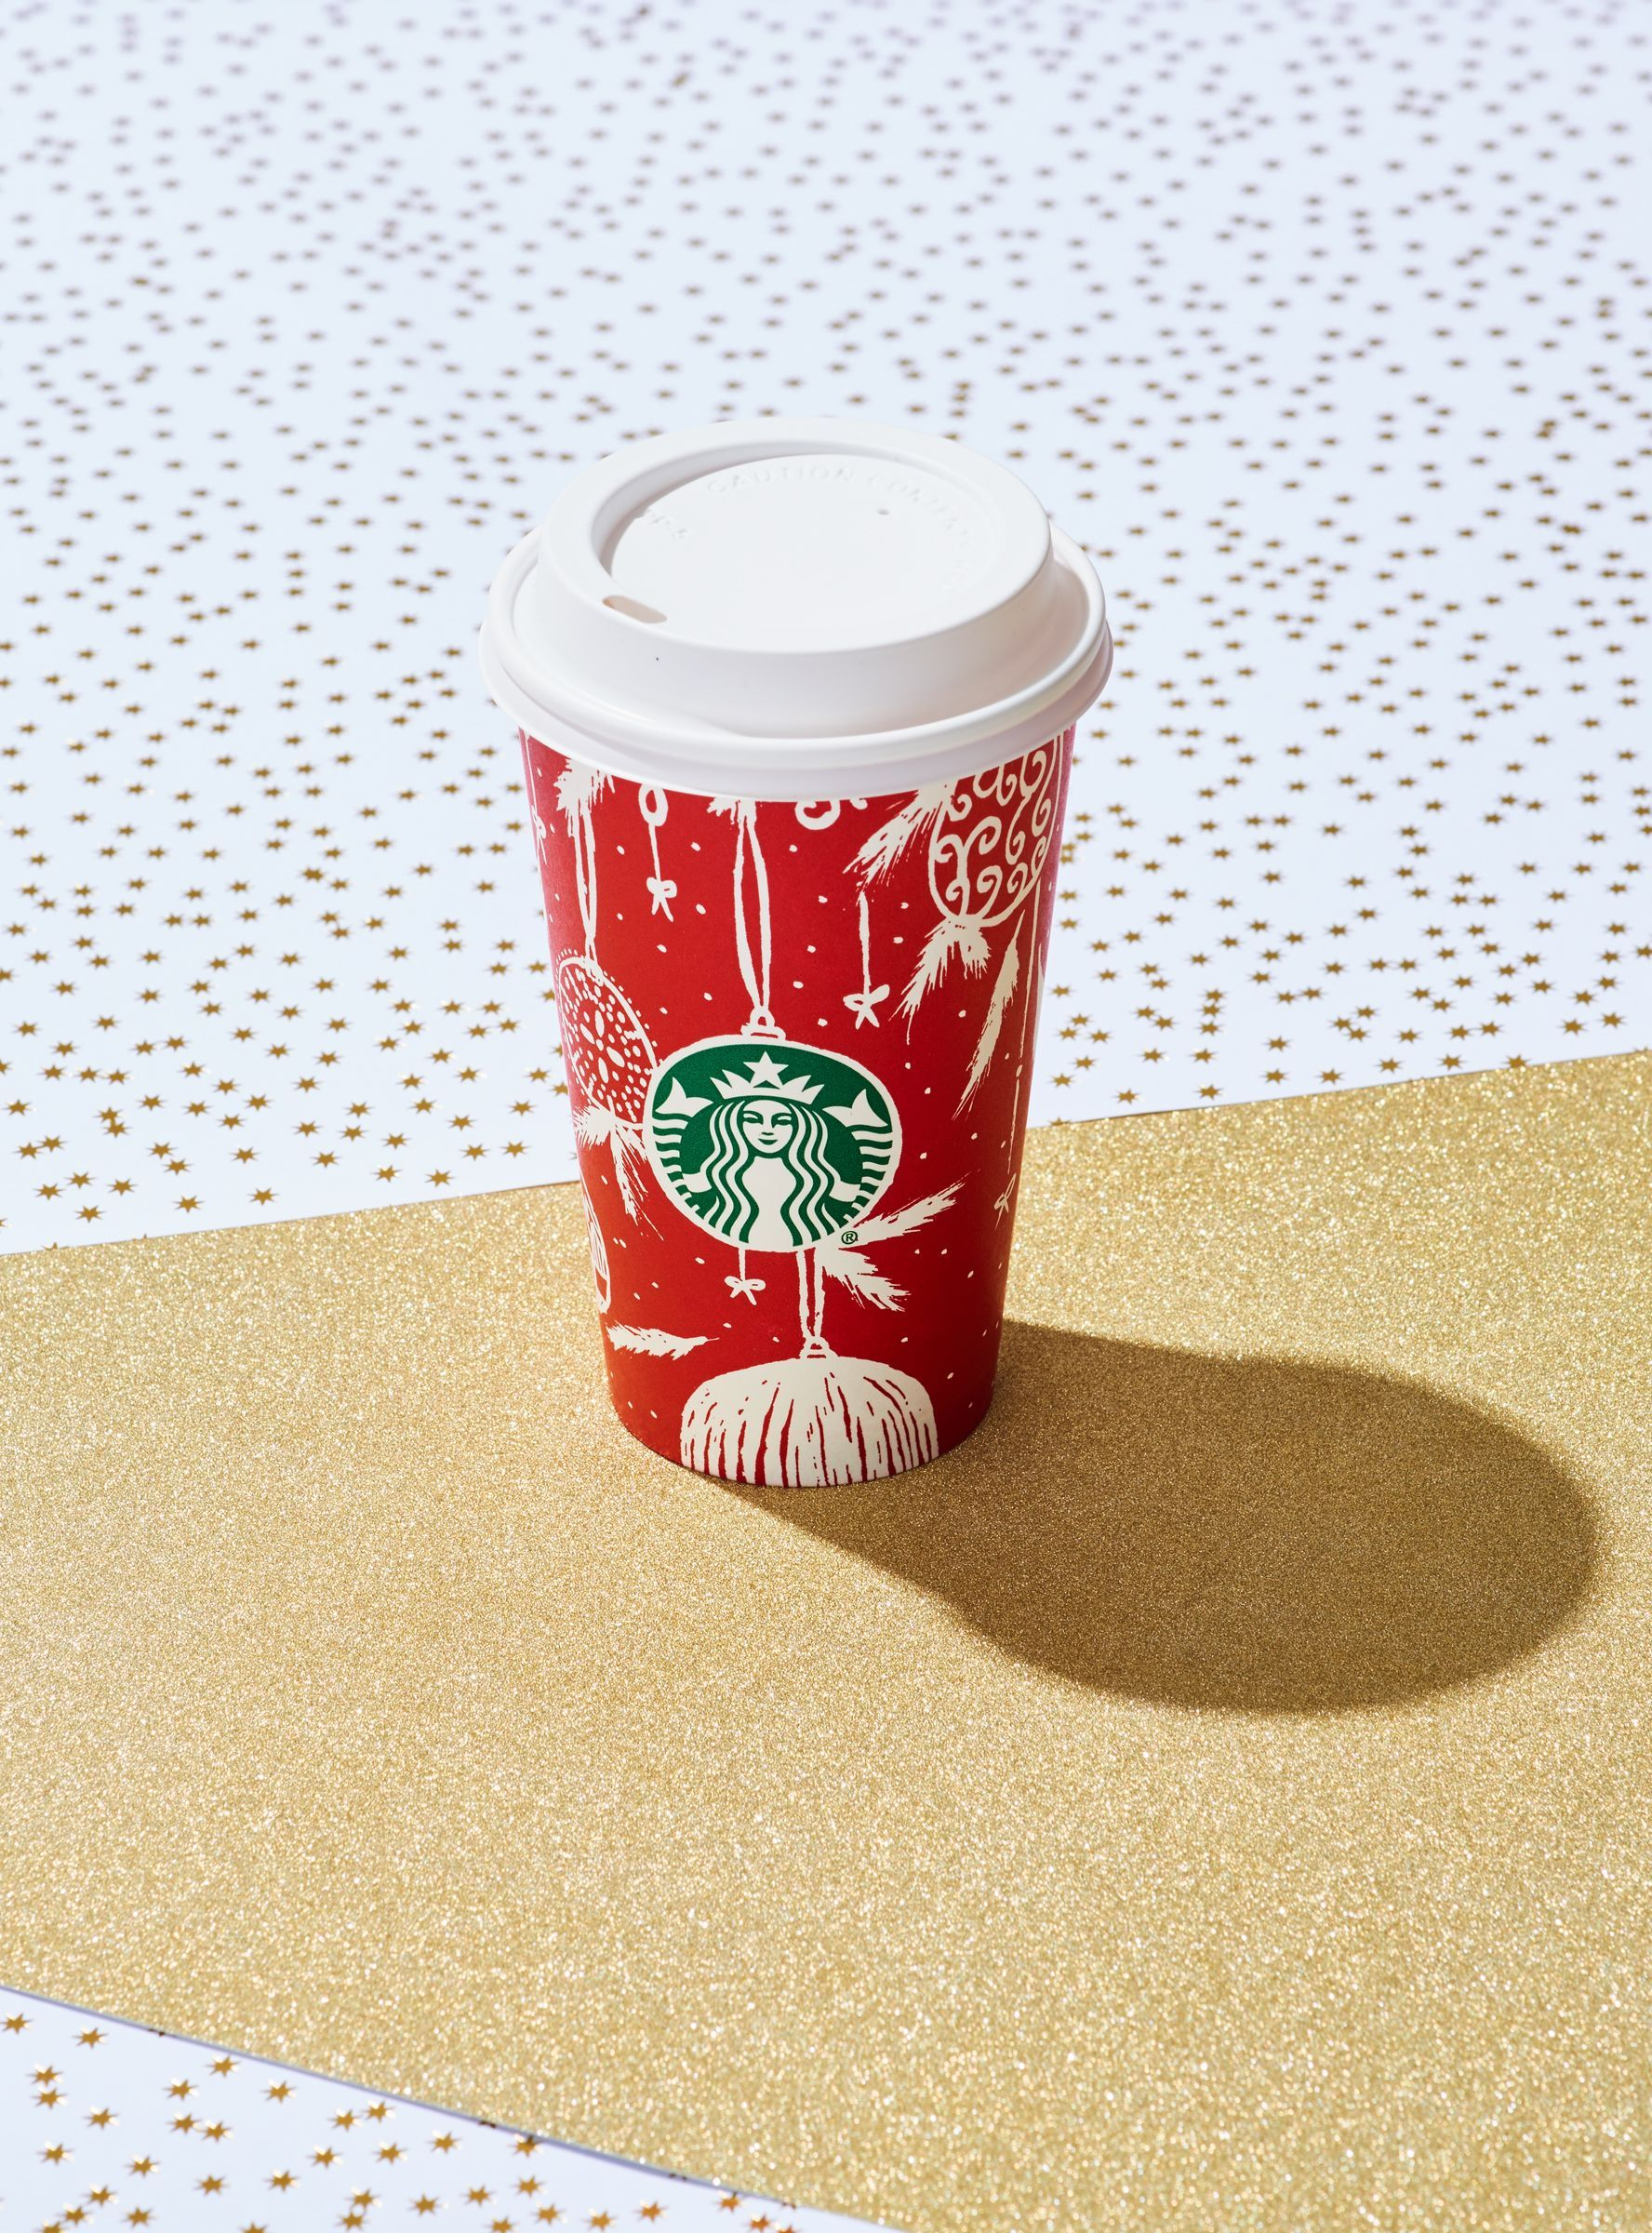 Here's How To Get Free Starbucks Coffee On Veterans Day